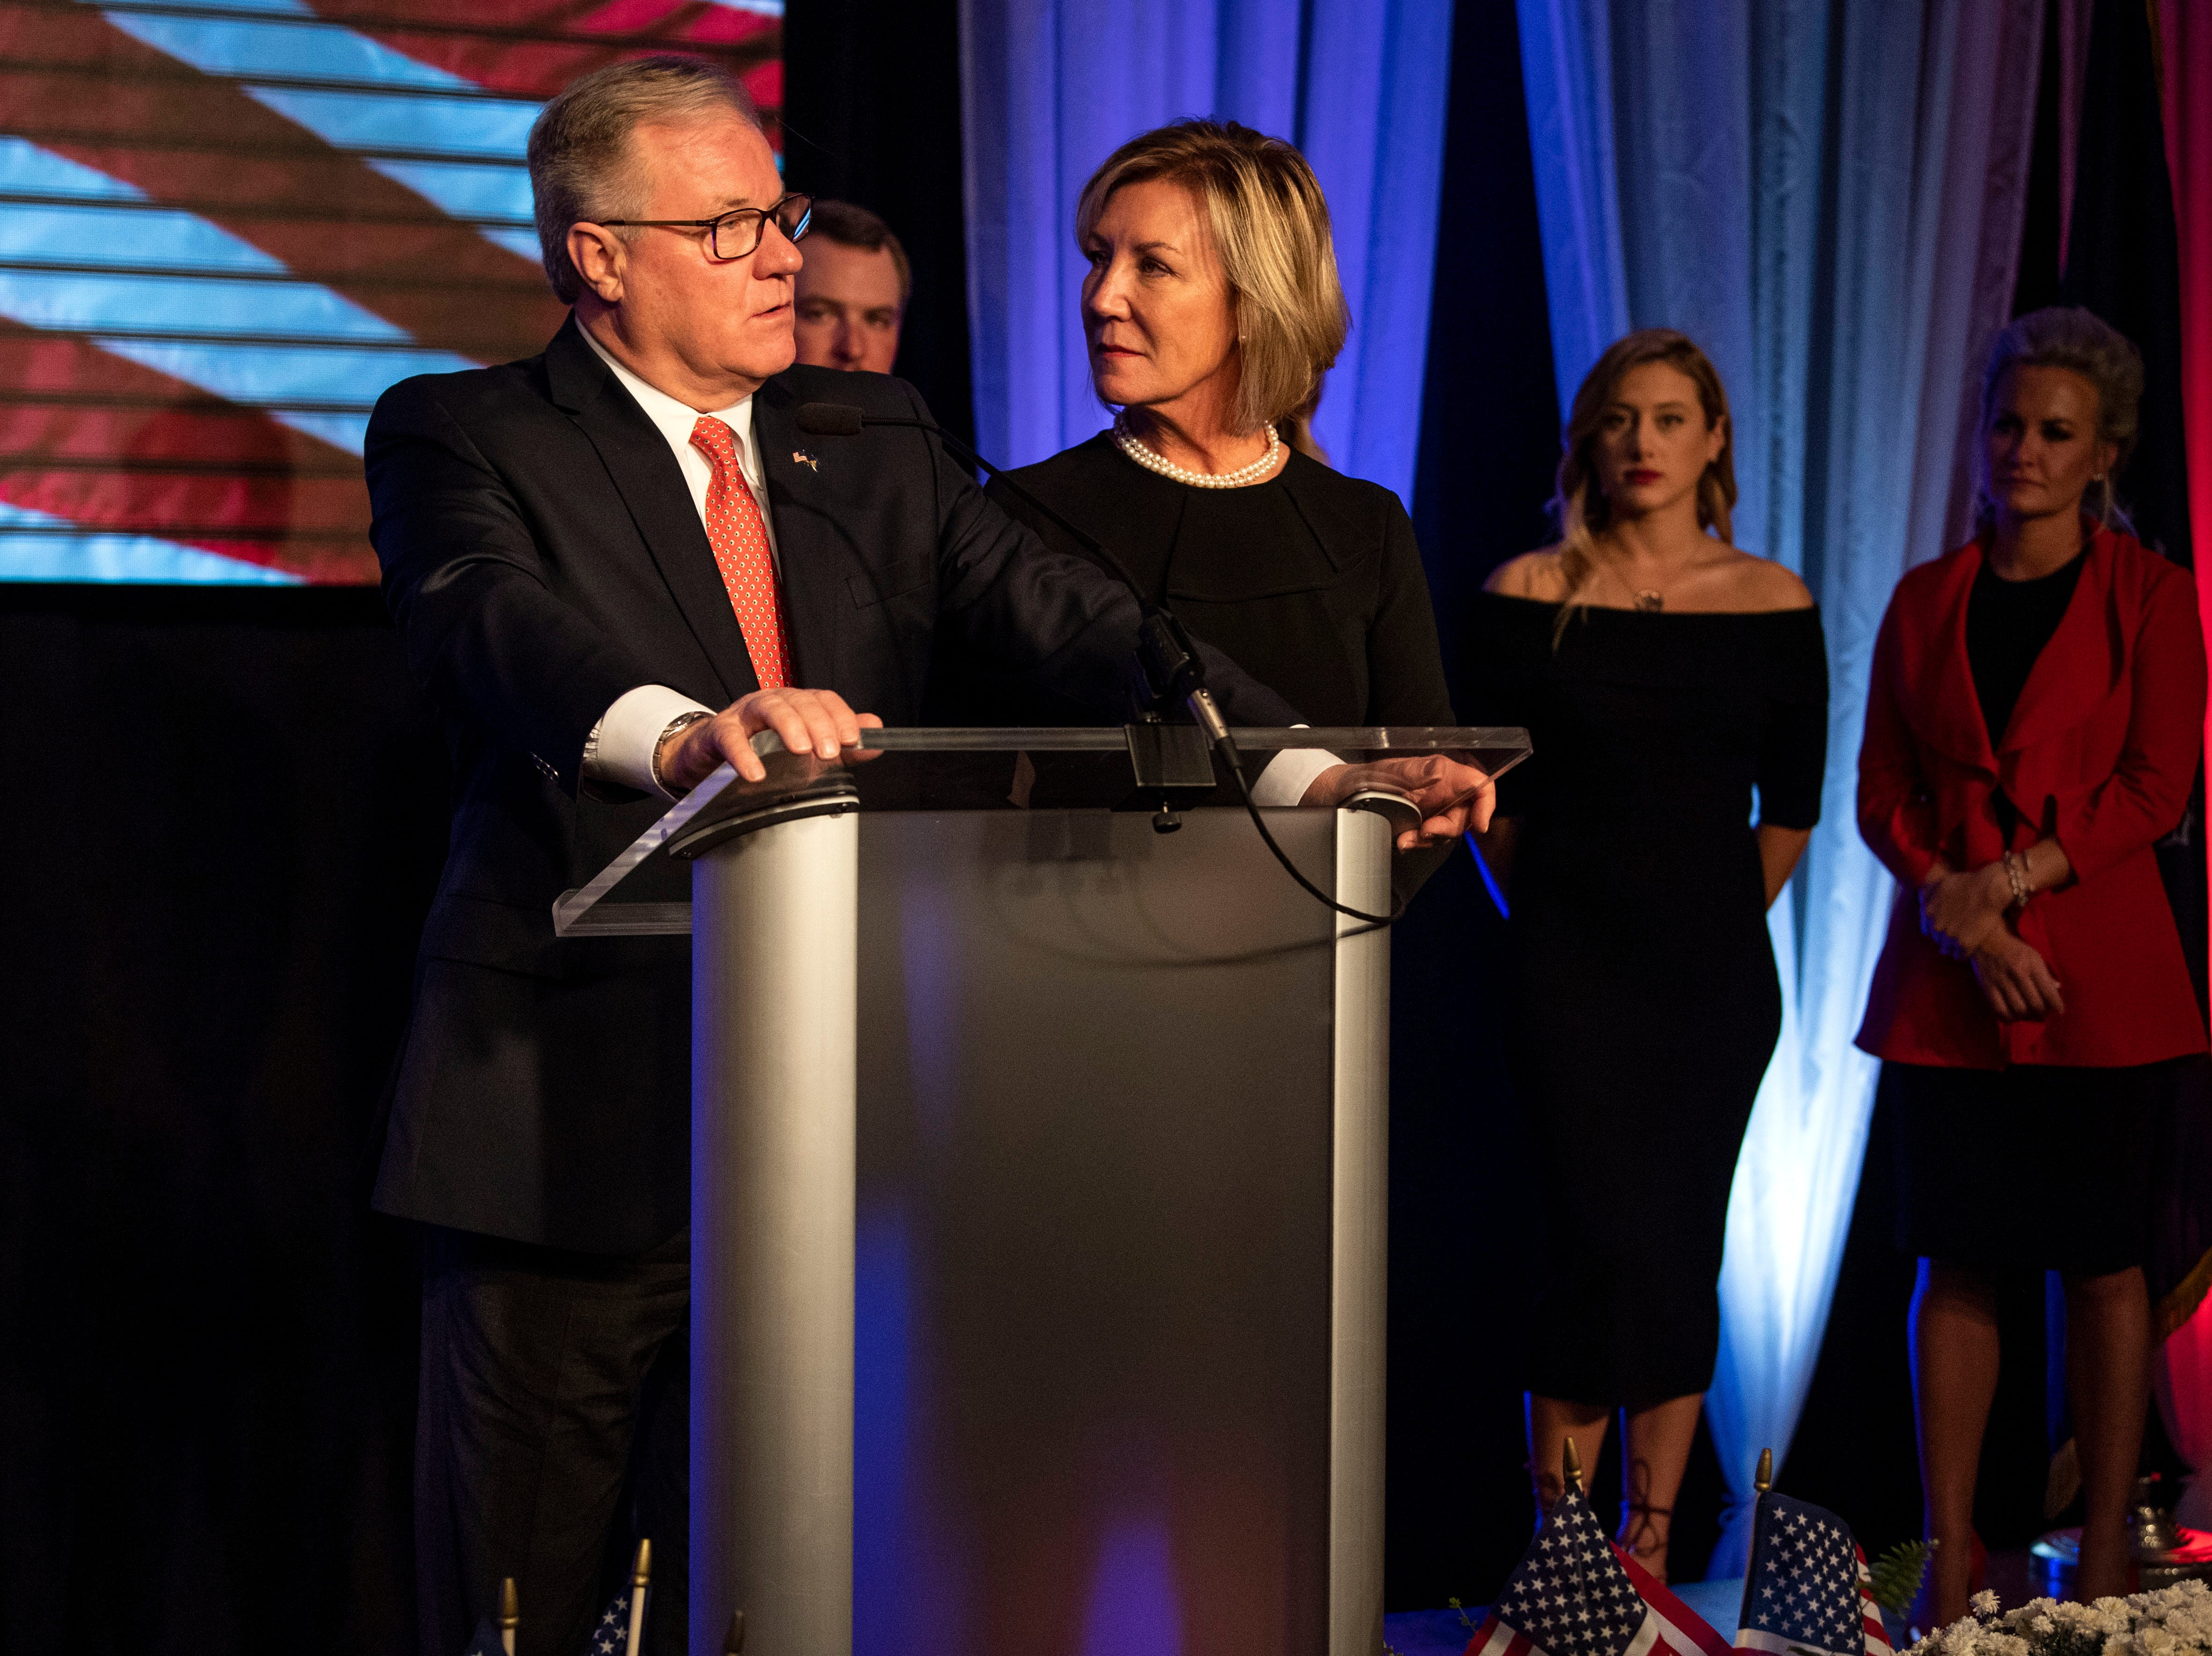 Republican Scott Wagner, with his wife Tracy beside him, gives his concession speech at the Wyndham Garden York hotel on Tuesday, Nov. 6, 2018. Wagner lost to Democratic incumbent Tom Wolf. During his concession speech, Wagner said he's not going anywhere.